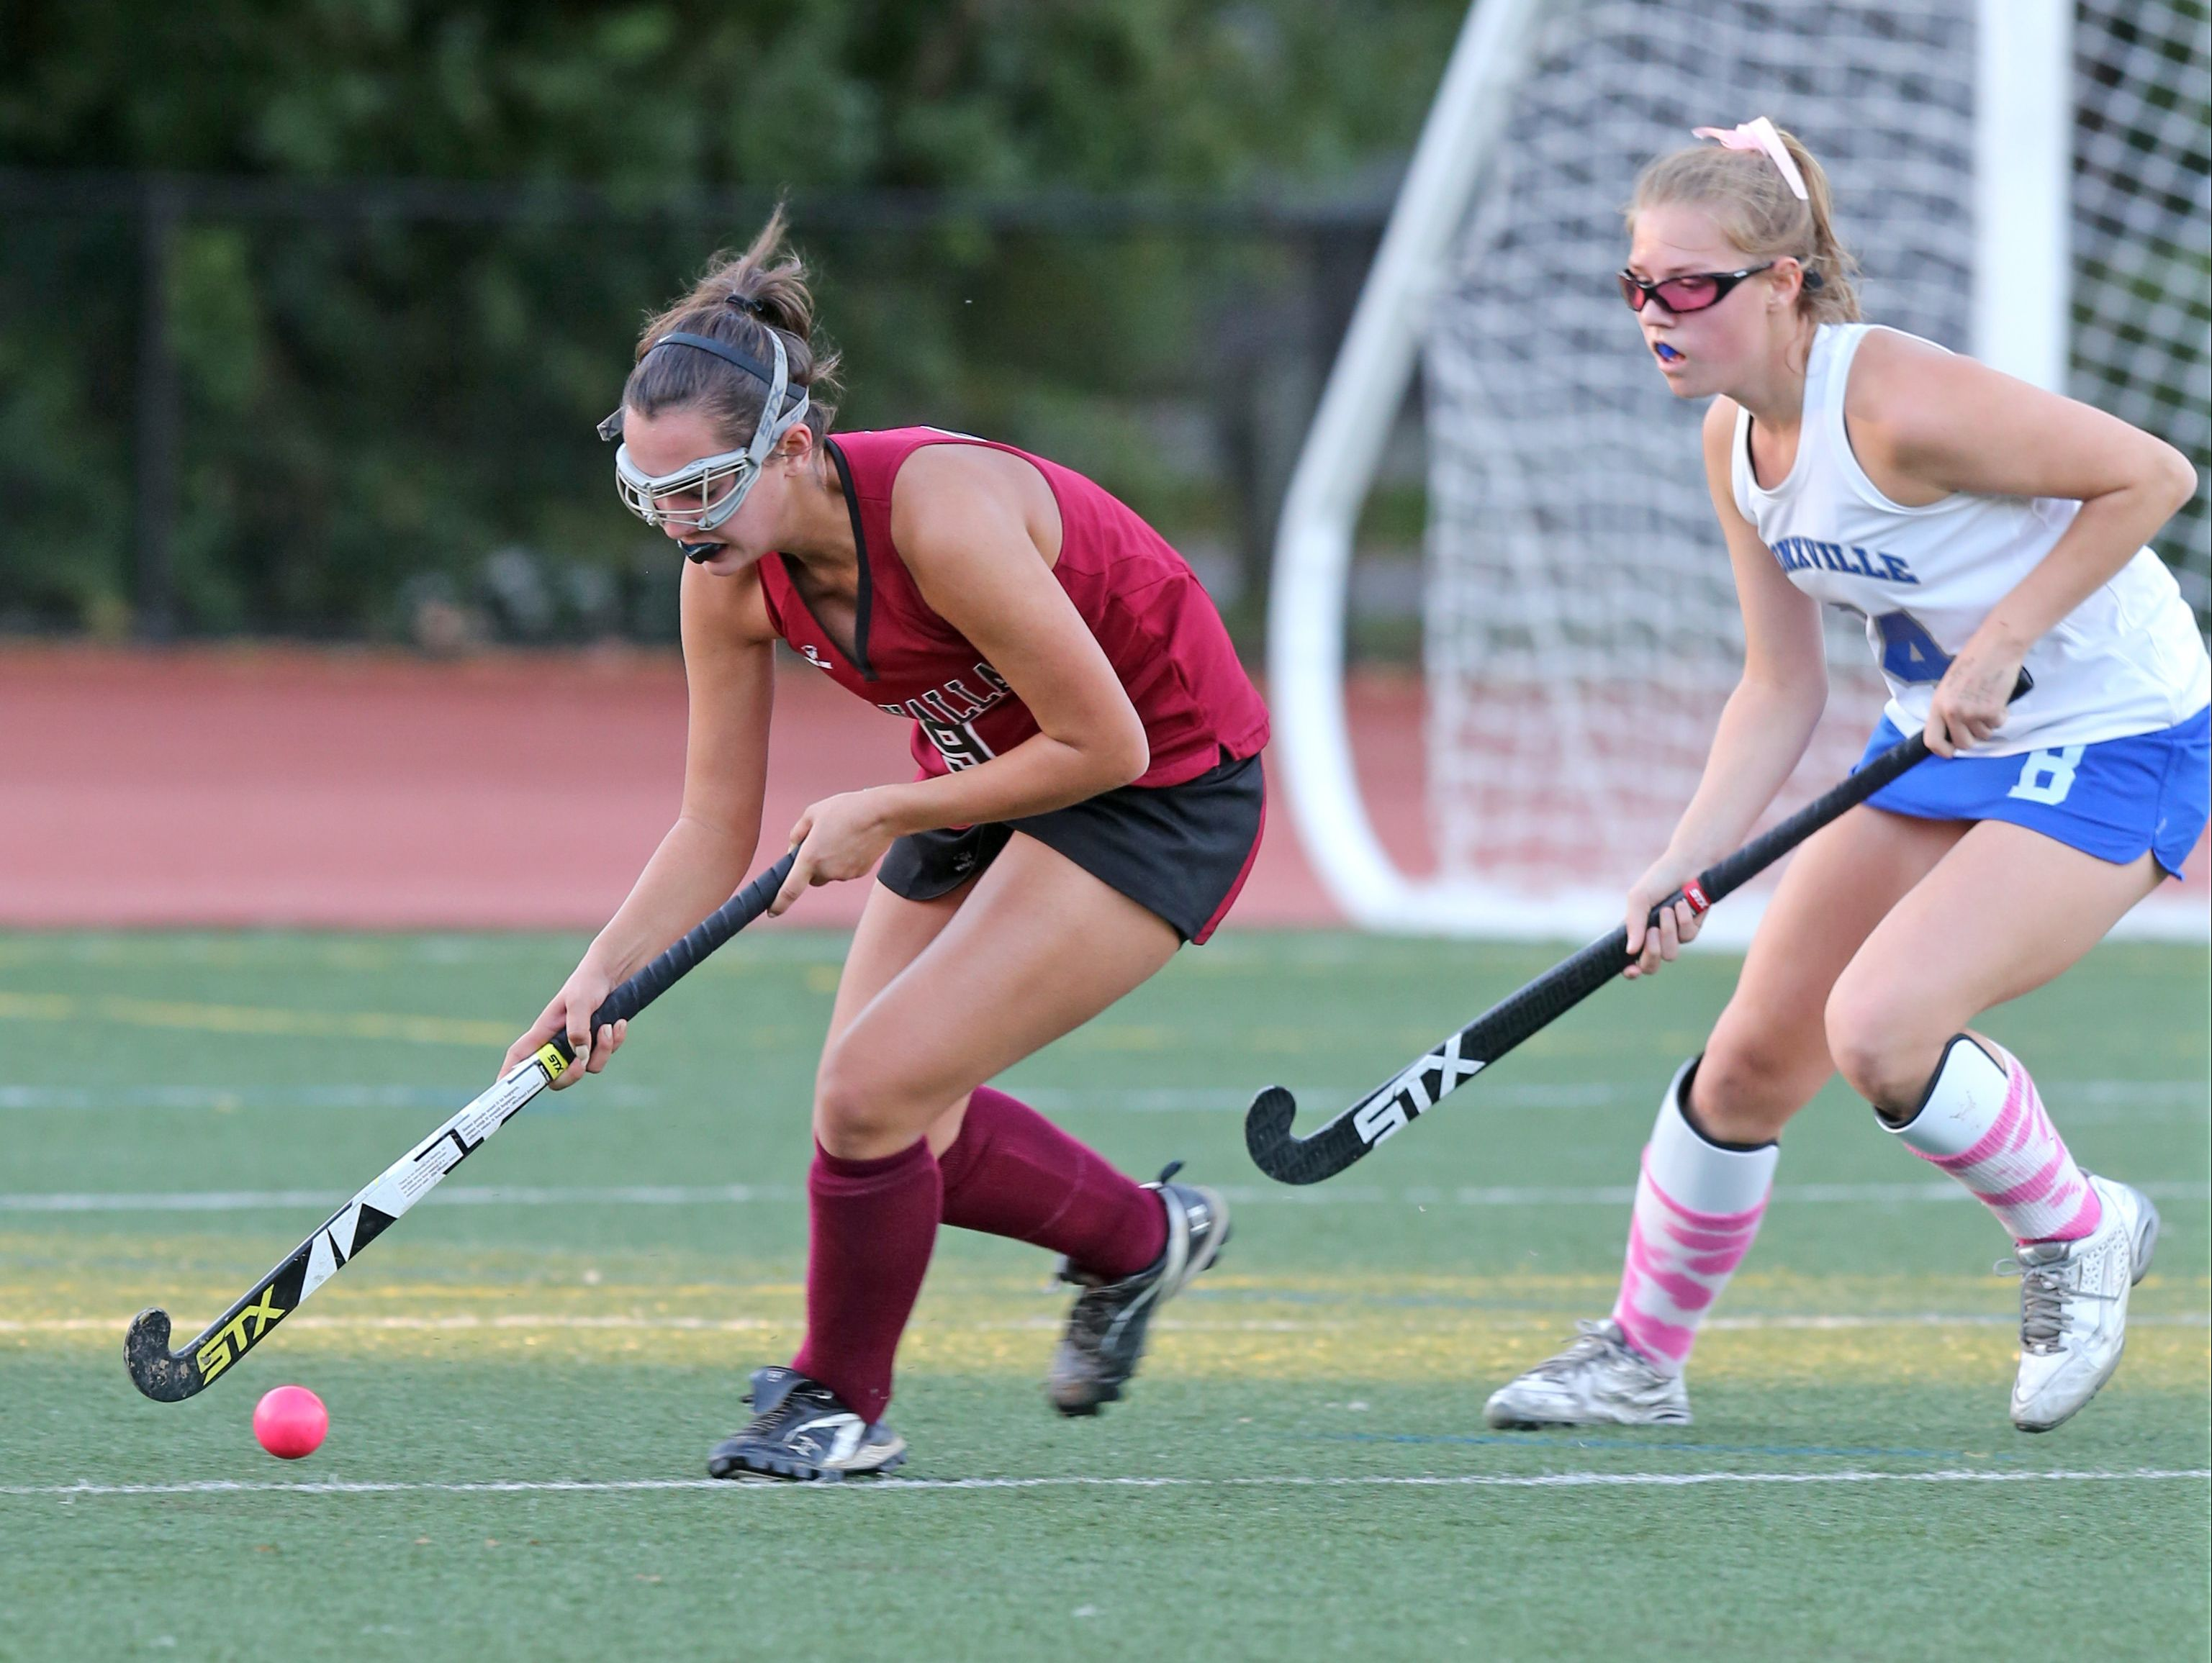 Valhalla's Lauren Kreder, left, tries to keep the ball from Bronxville's Hadley Barr during their game at Bronxville High School on Friday. The Broncos defeated the Vikings 3-1.